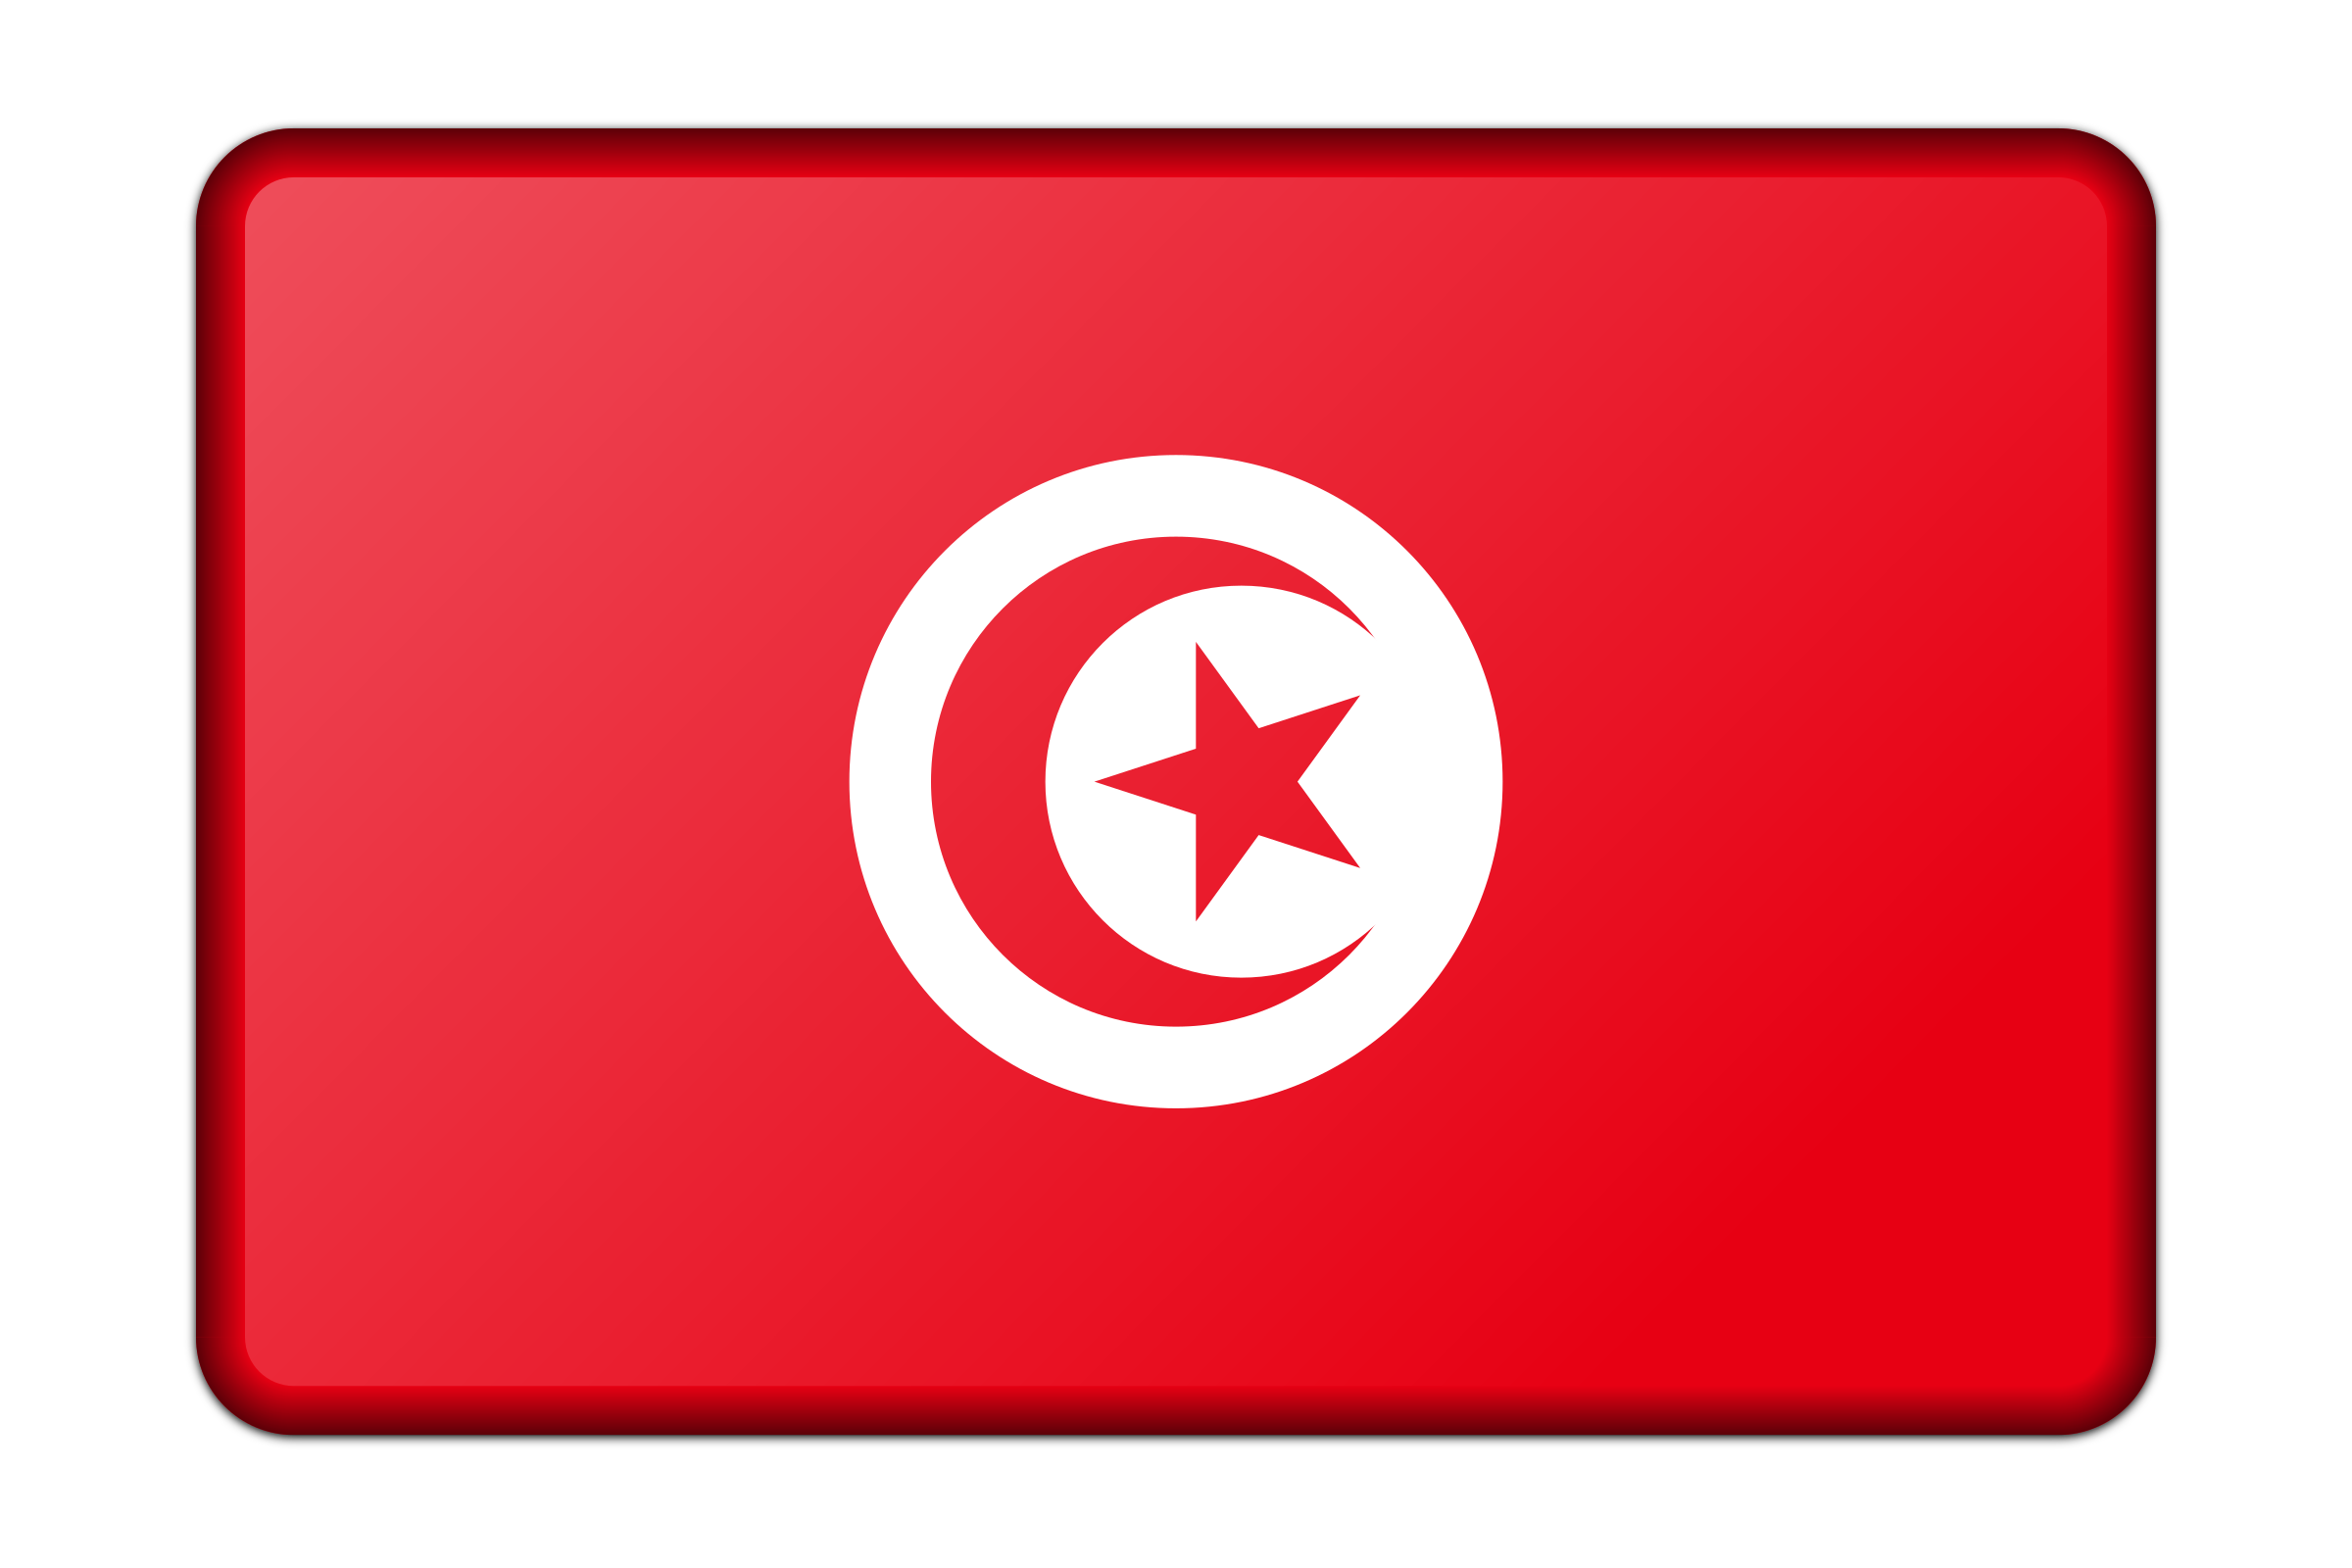 Tunisia flag (bevelled) by Firkin